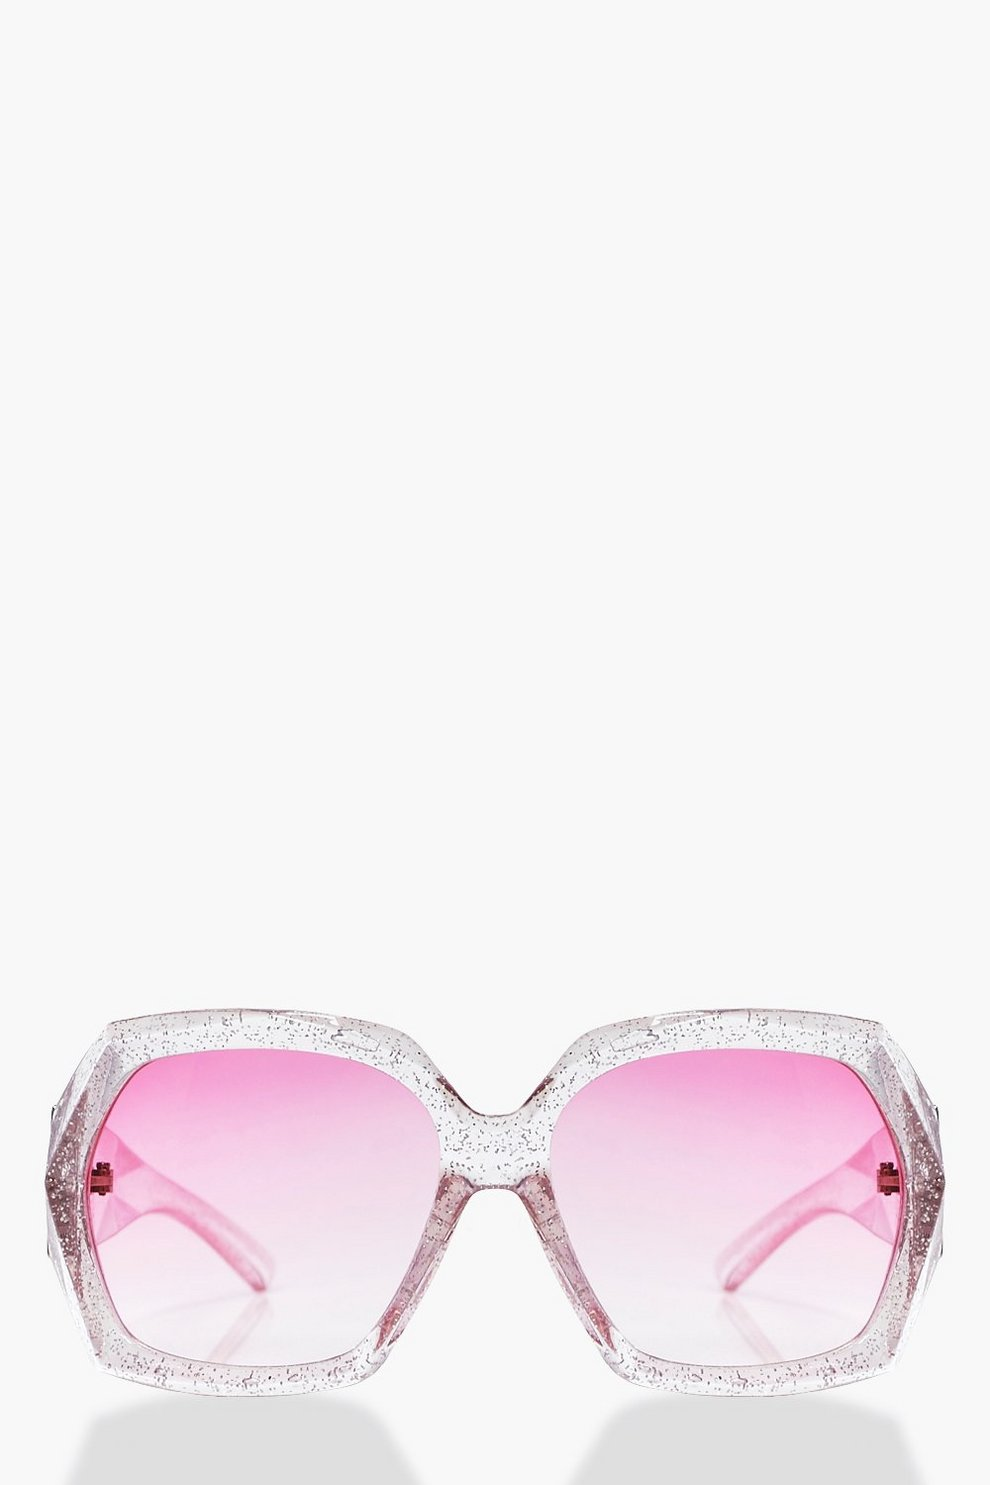 Lacey Glitter Clear Frame Oversized Fashion Glasses | Boohoo